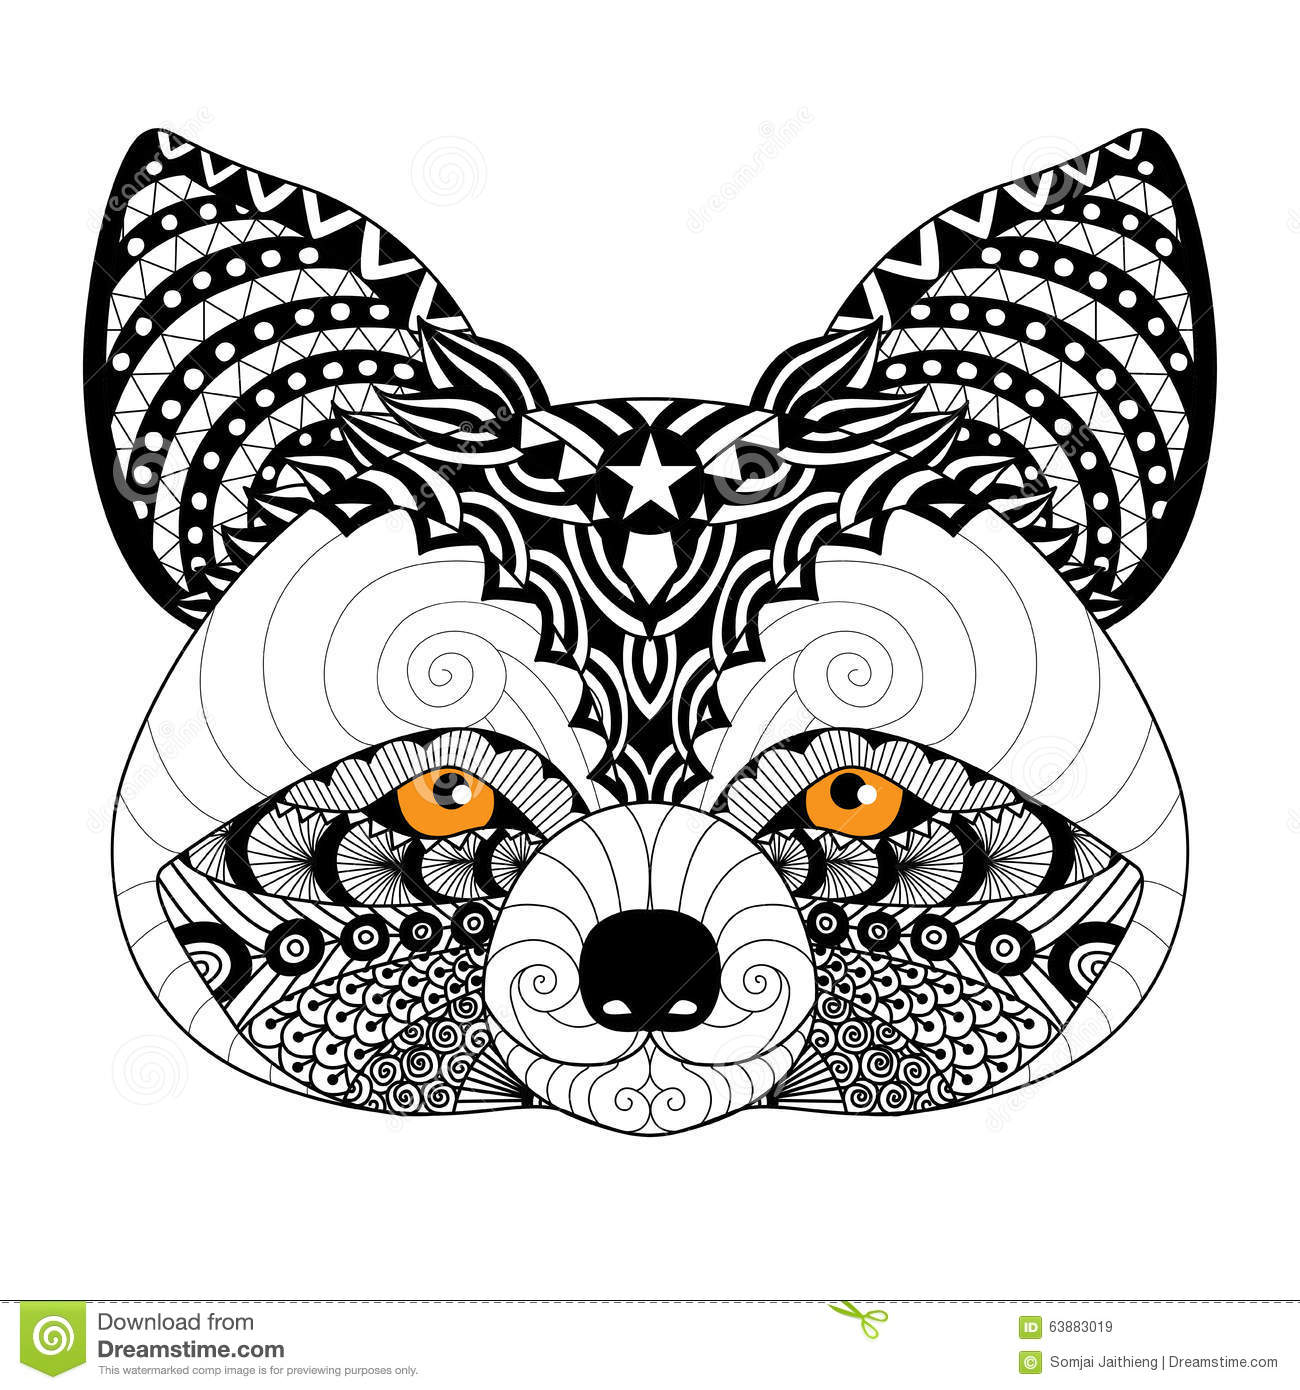 Zentangle Raccoon For Coloring Page For Adult Tattoo Logo Shirt Design And Other Decorations